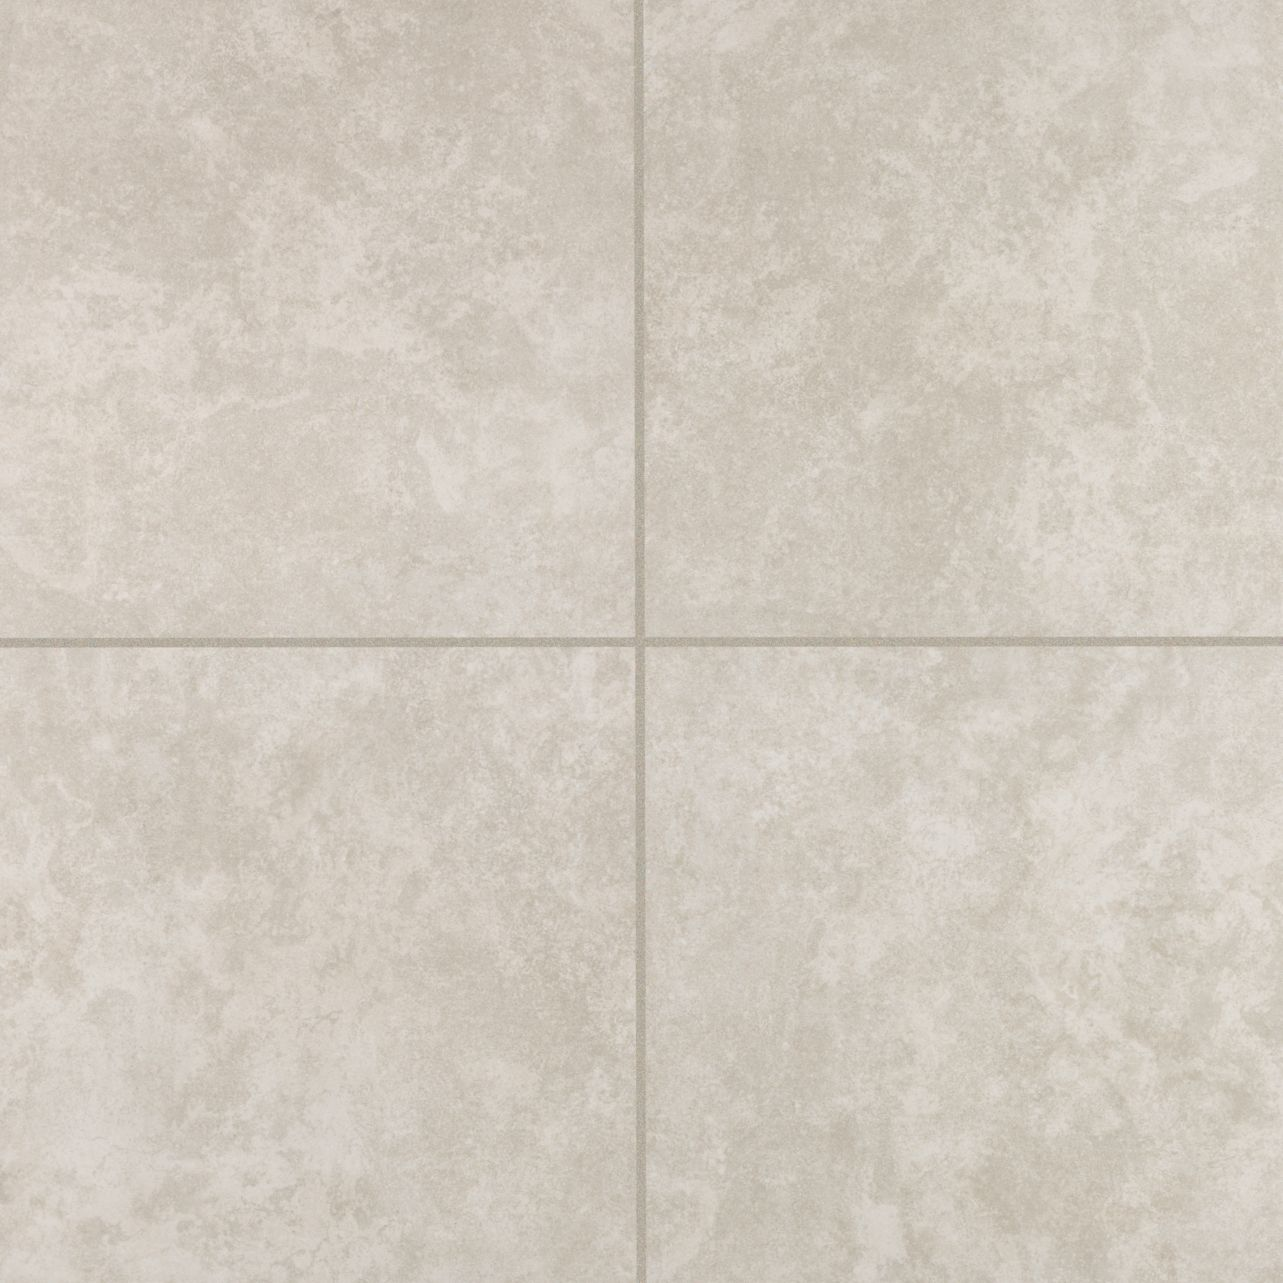 CeramicPorcelainTile Astello Floor Cream  main image